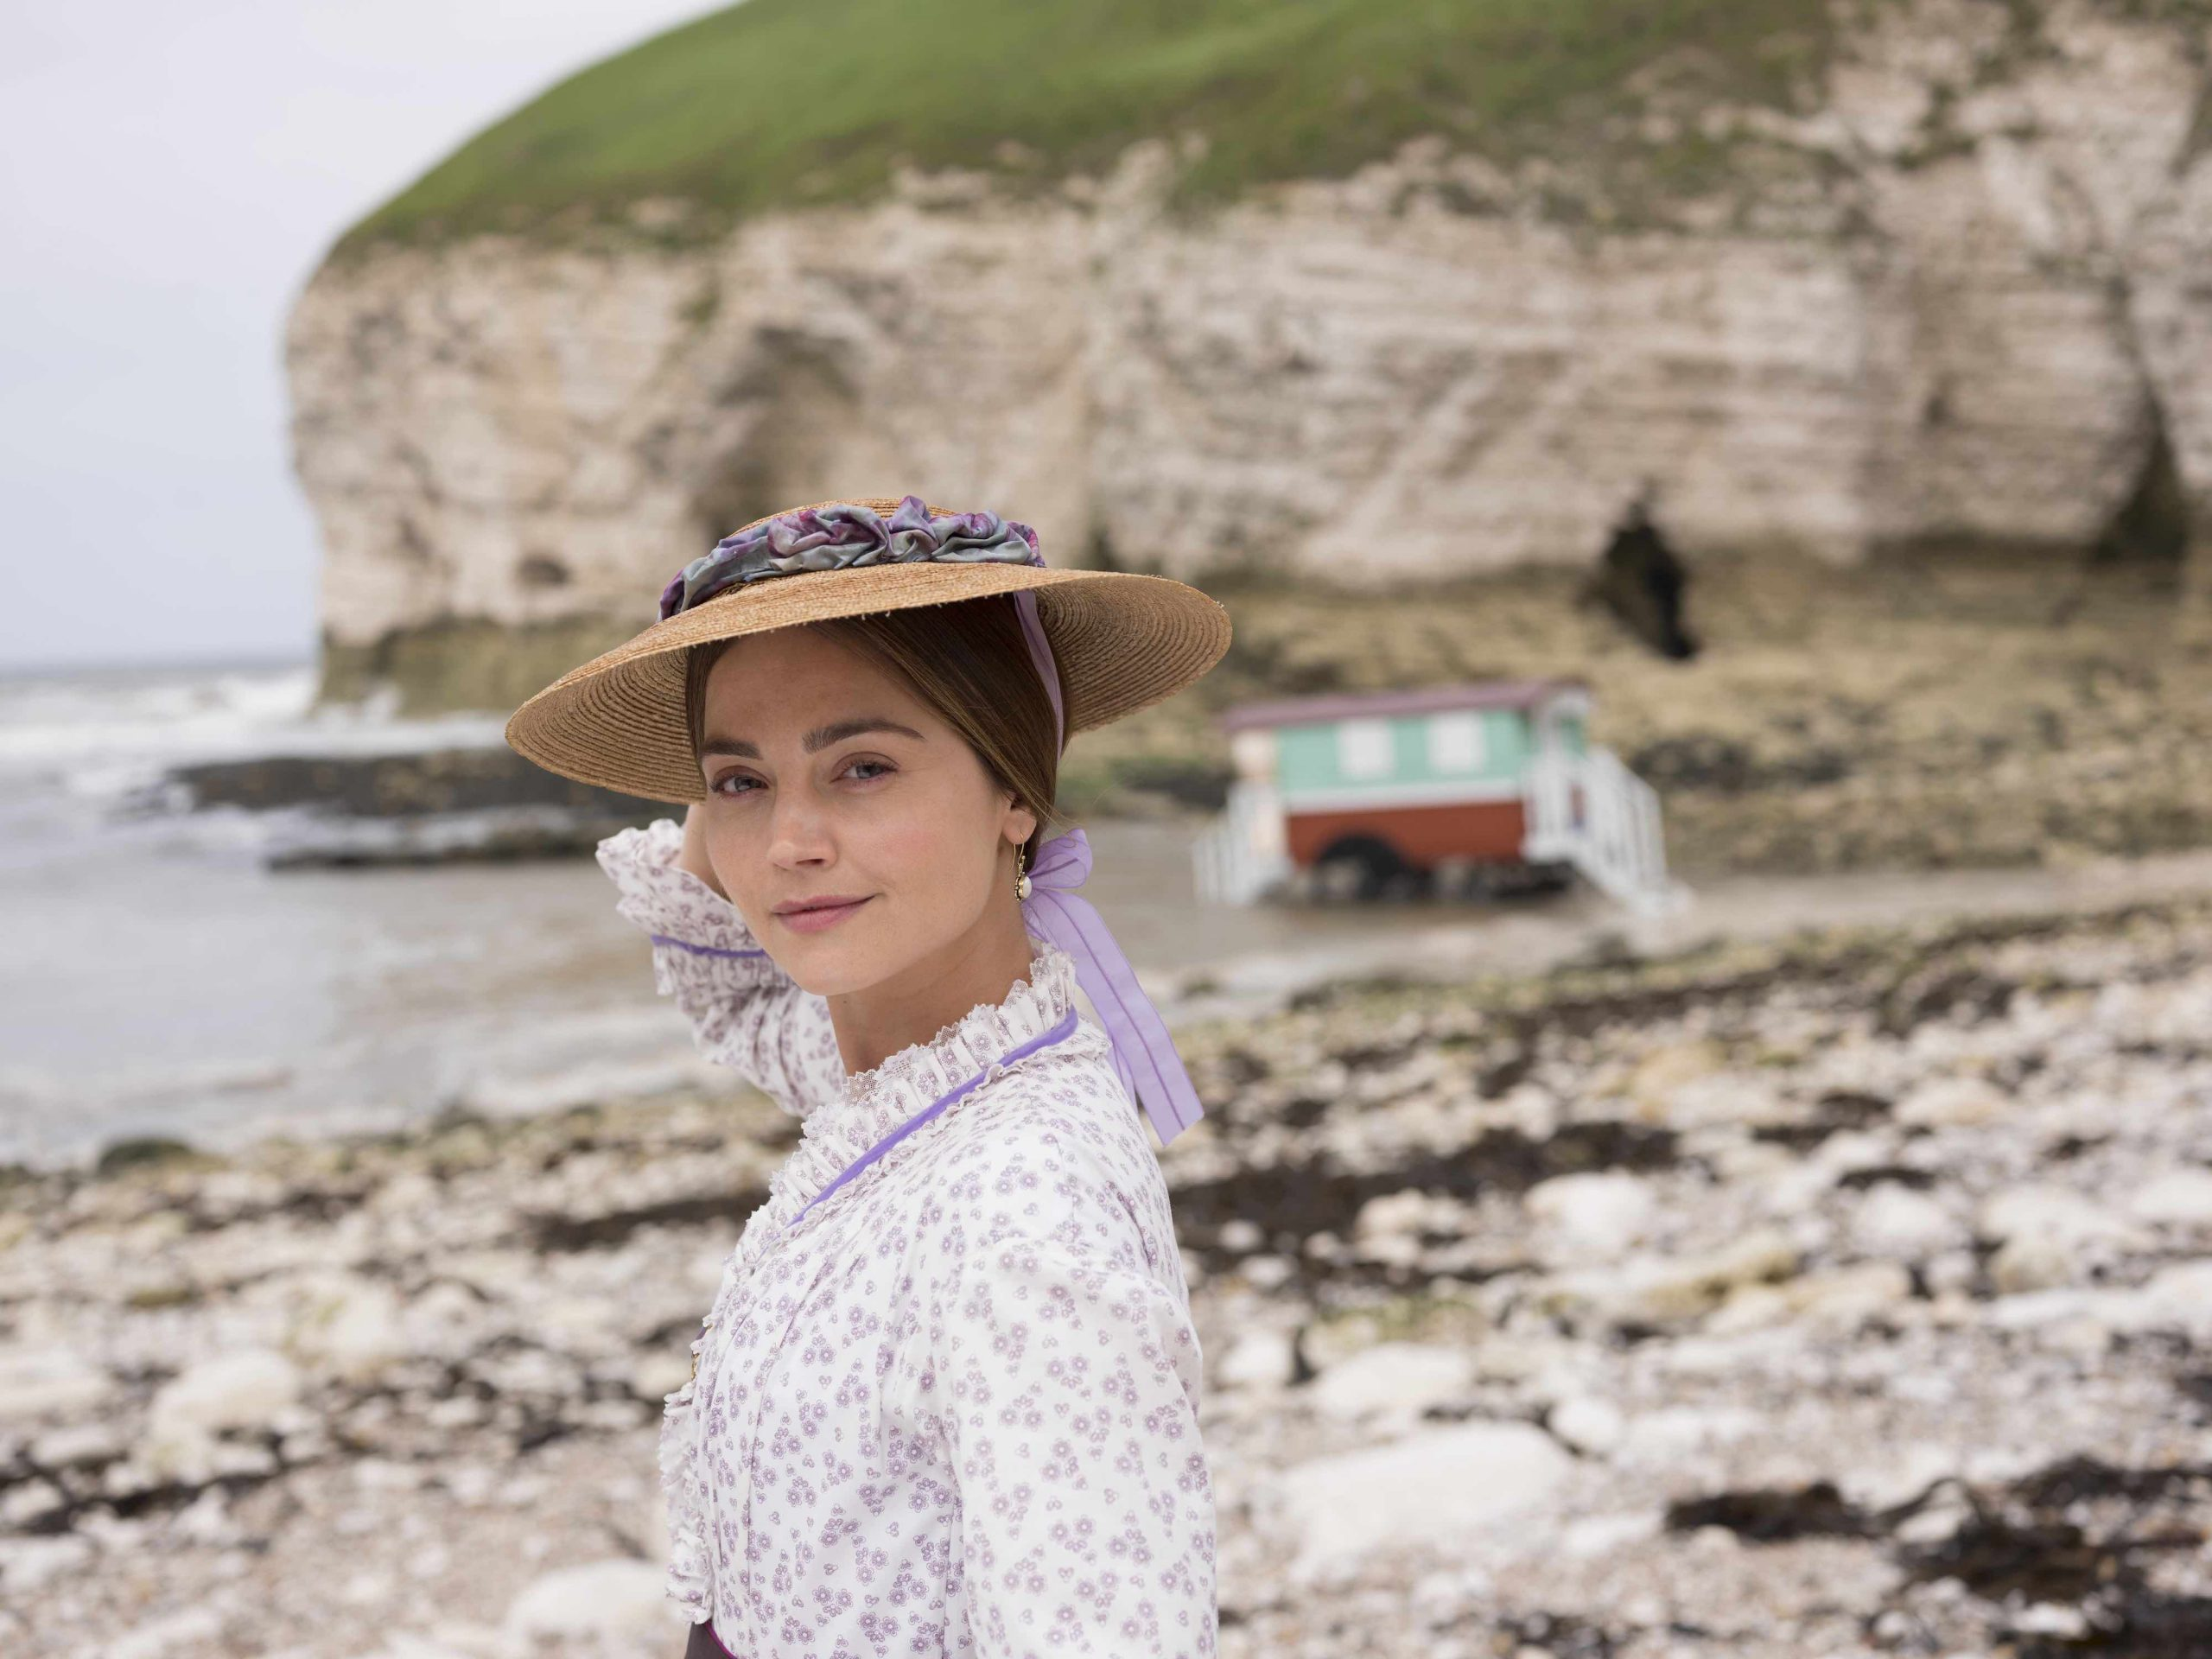 Jenna Coleman as Queen Victoria wearing a straw hat and standing on a beach